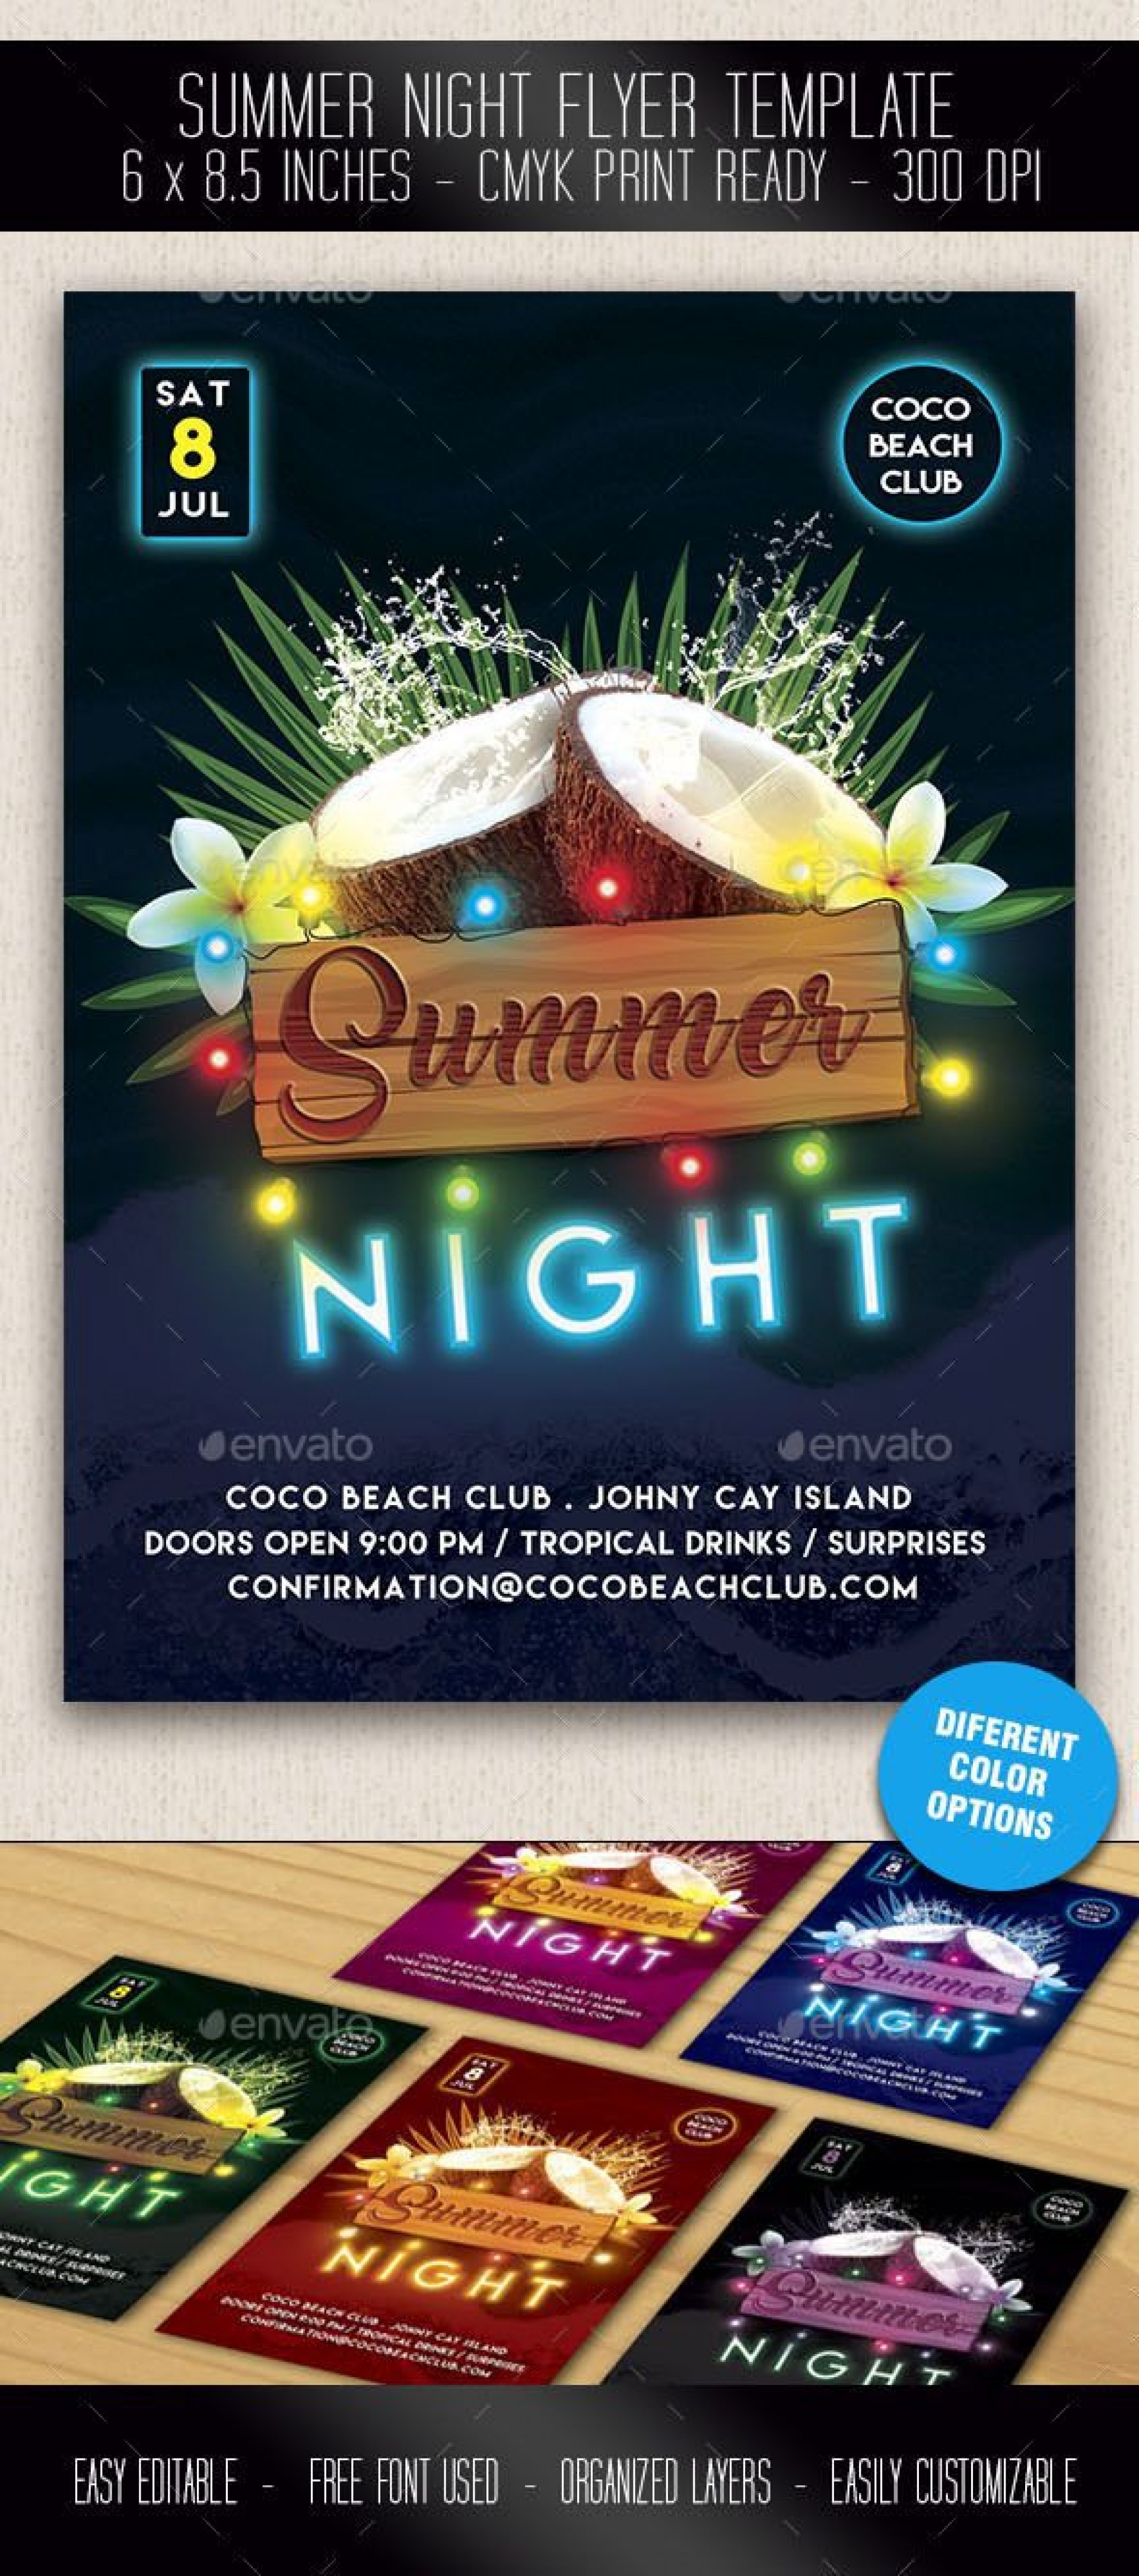 000 Shocking Free Party Flyer Template For Mac Highest Quality 1920